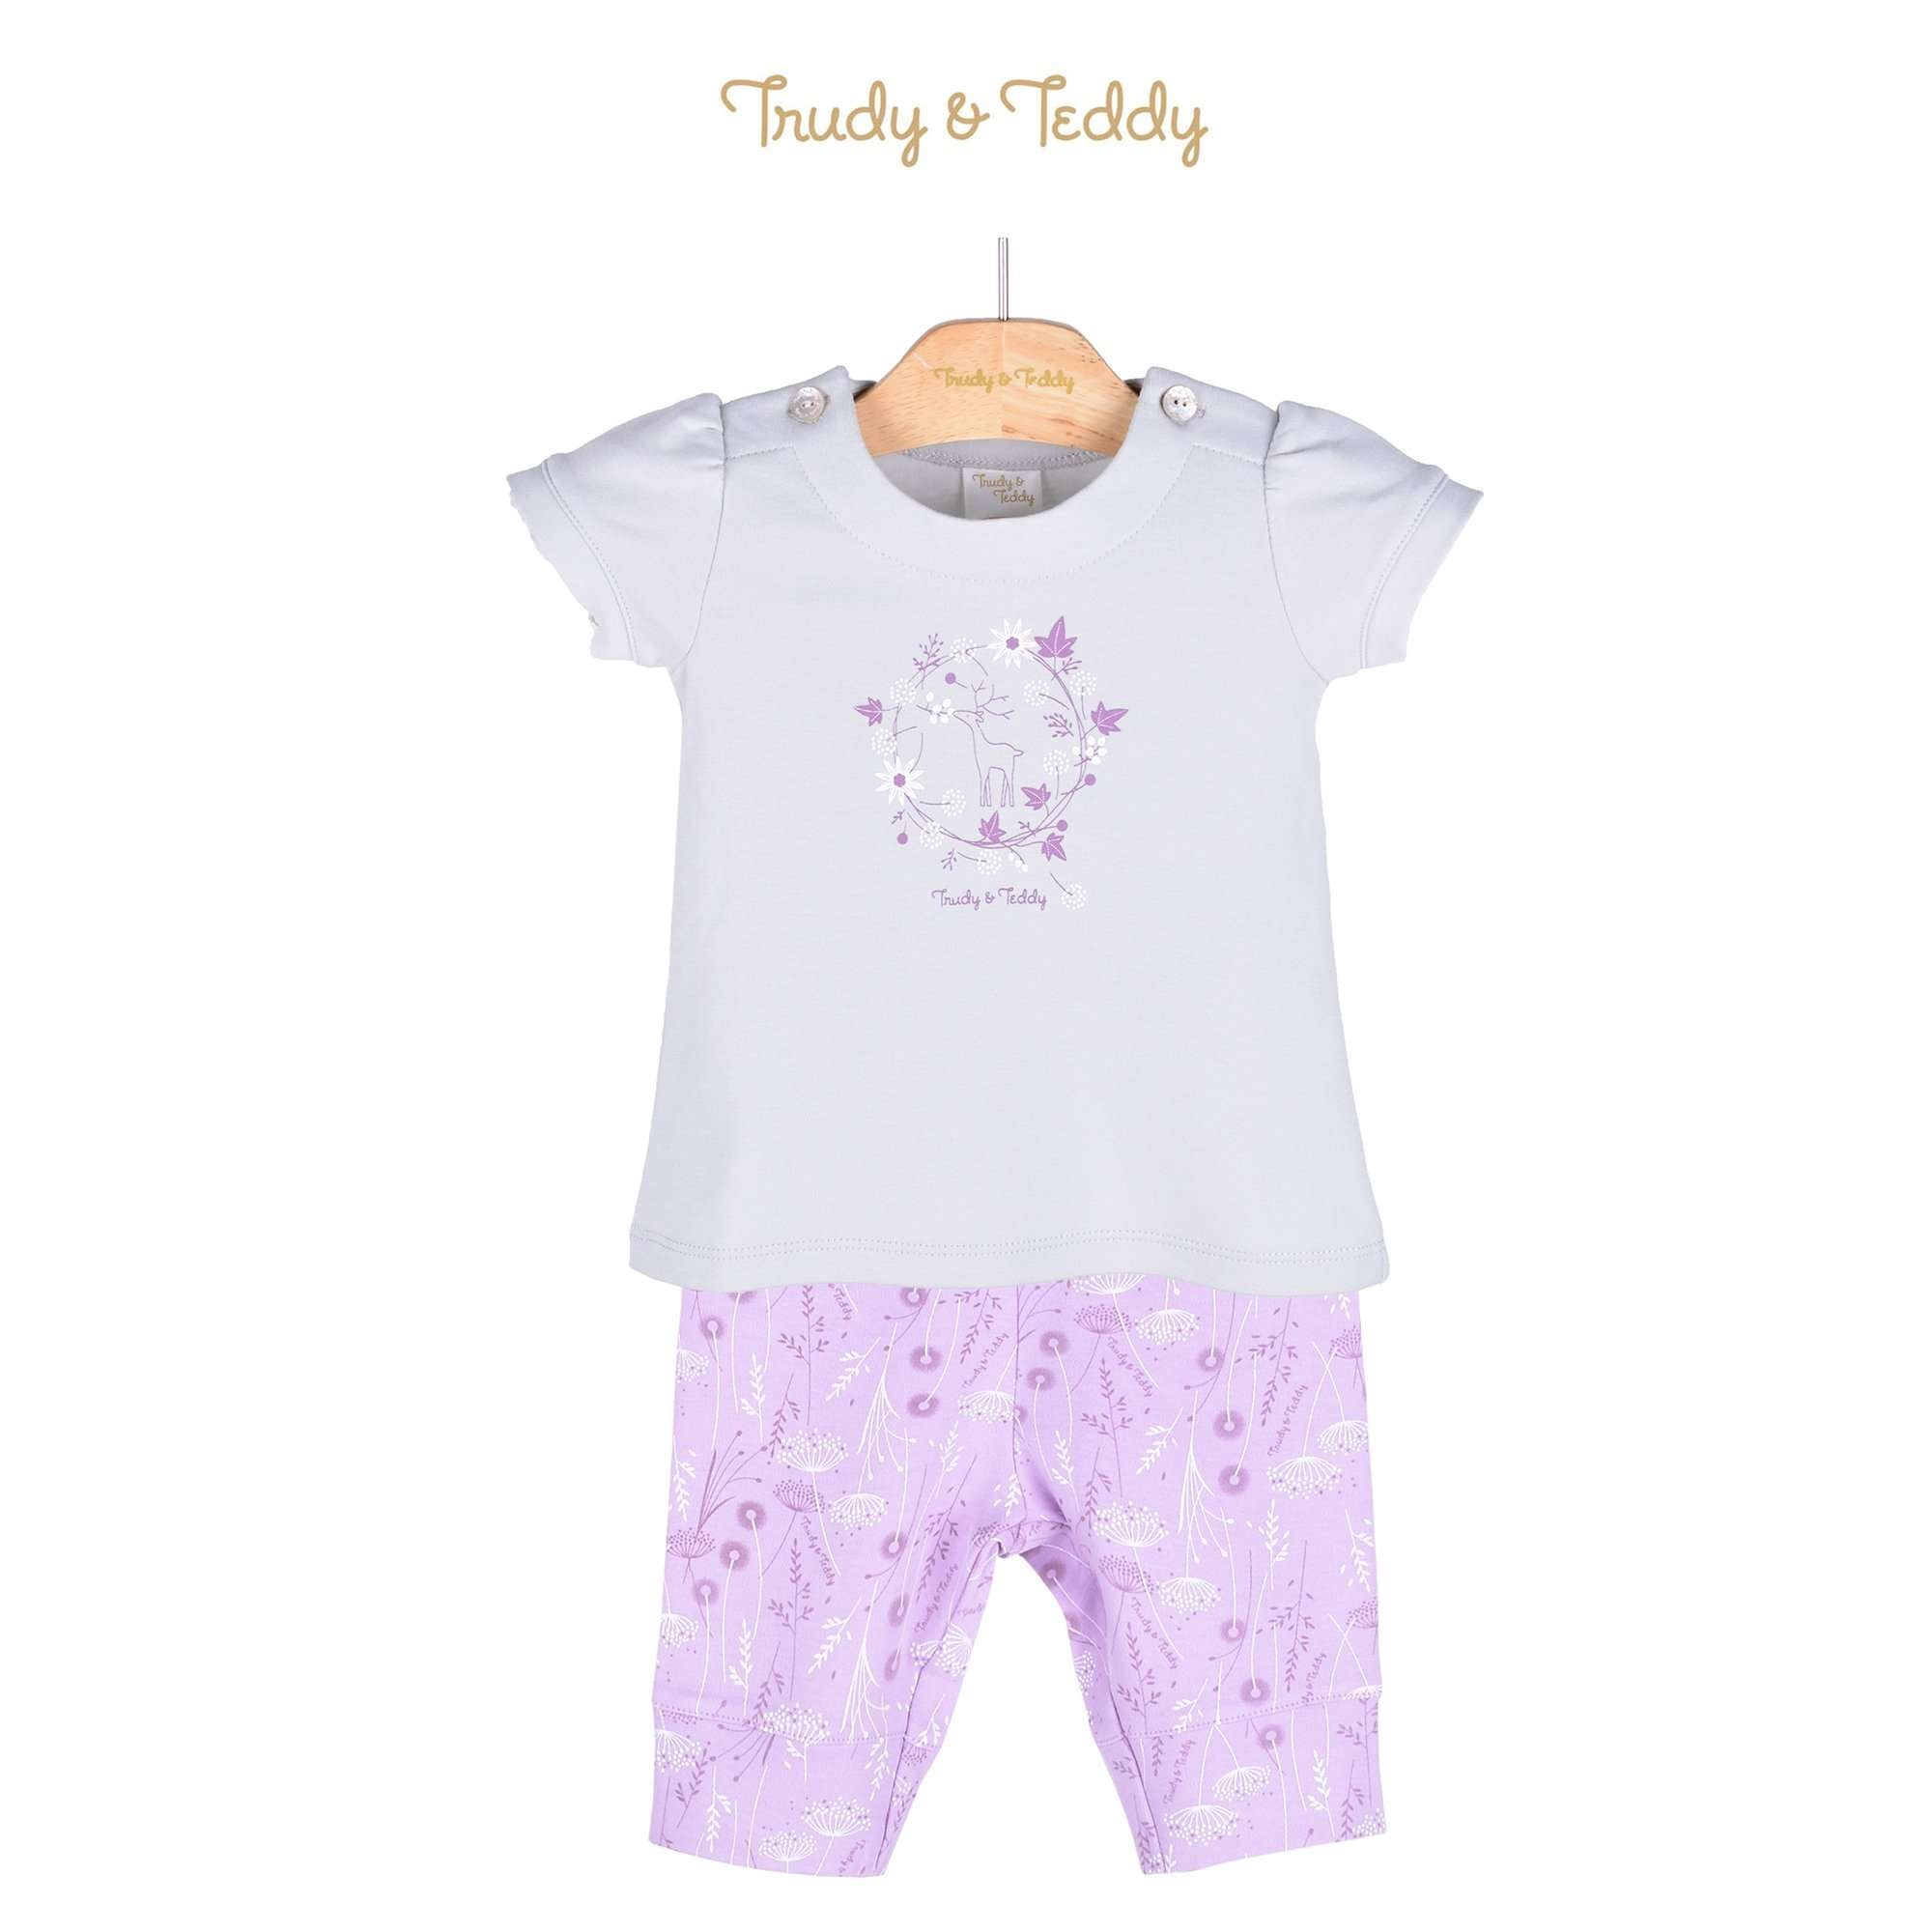 Trudy & Teddy Baby Girl Short Sleeve Bermuda Suit 820028-411 : Buy Trudy & Teddy online at CMG.MY